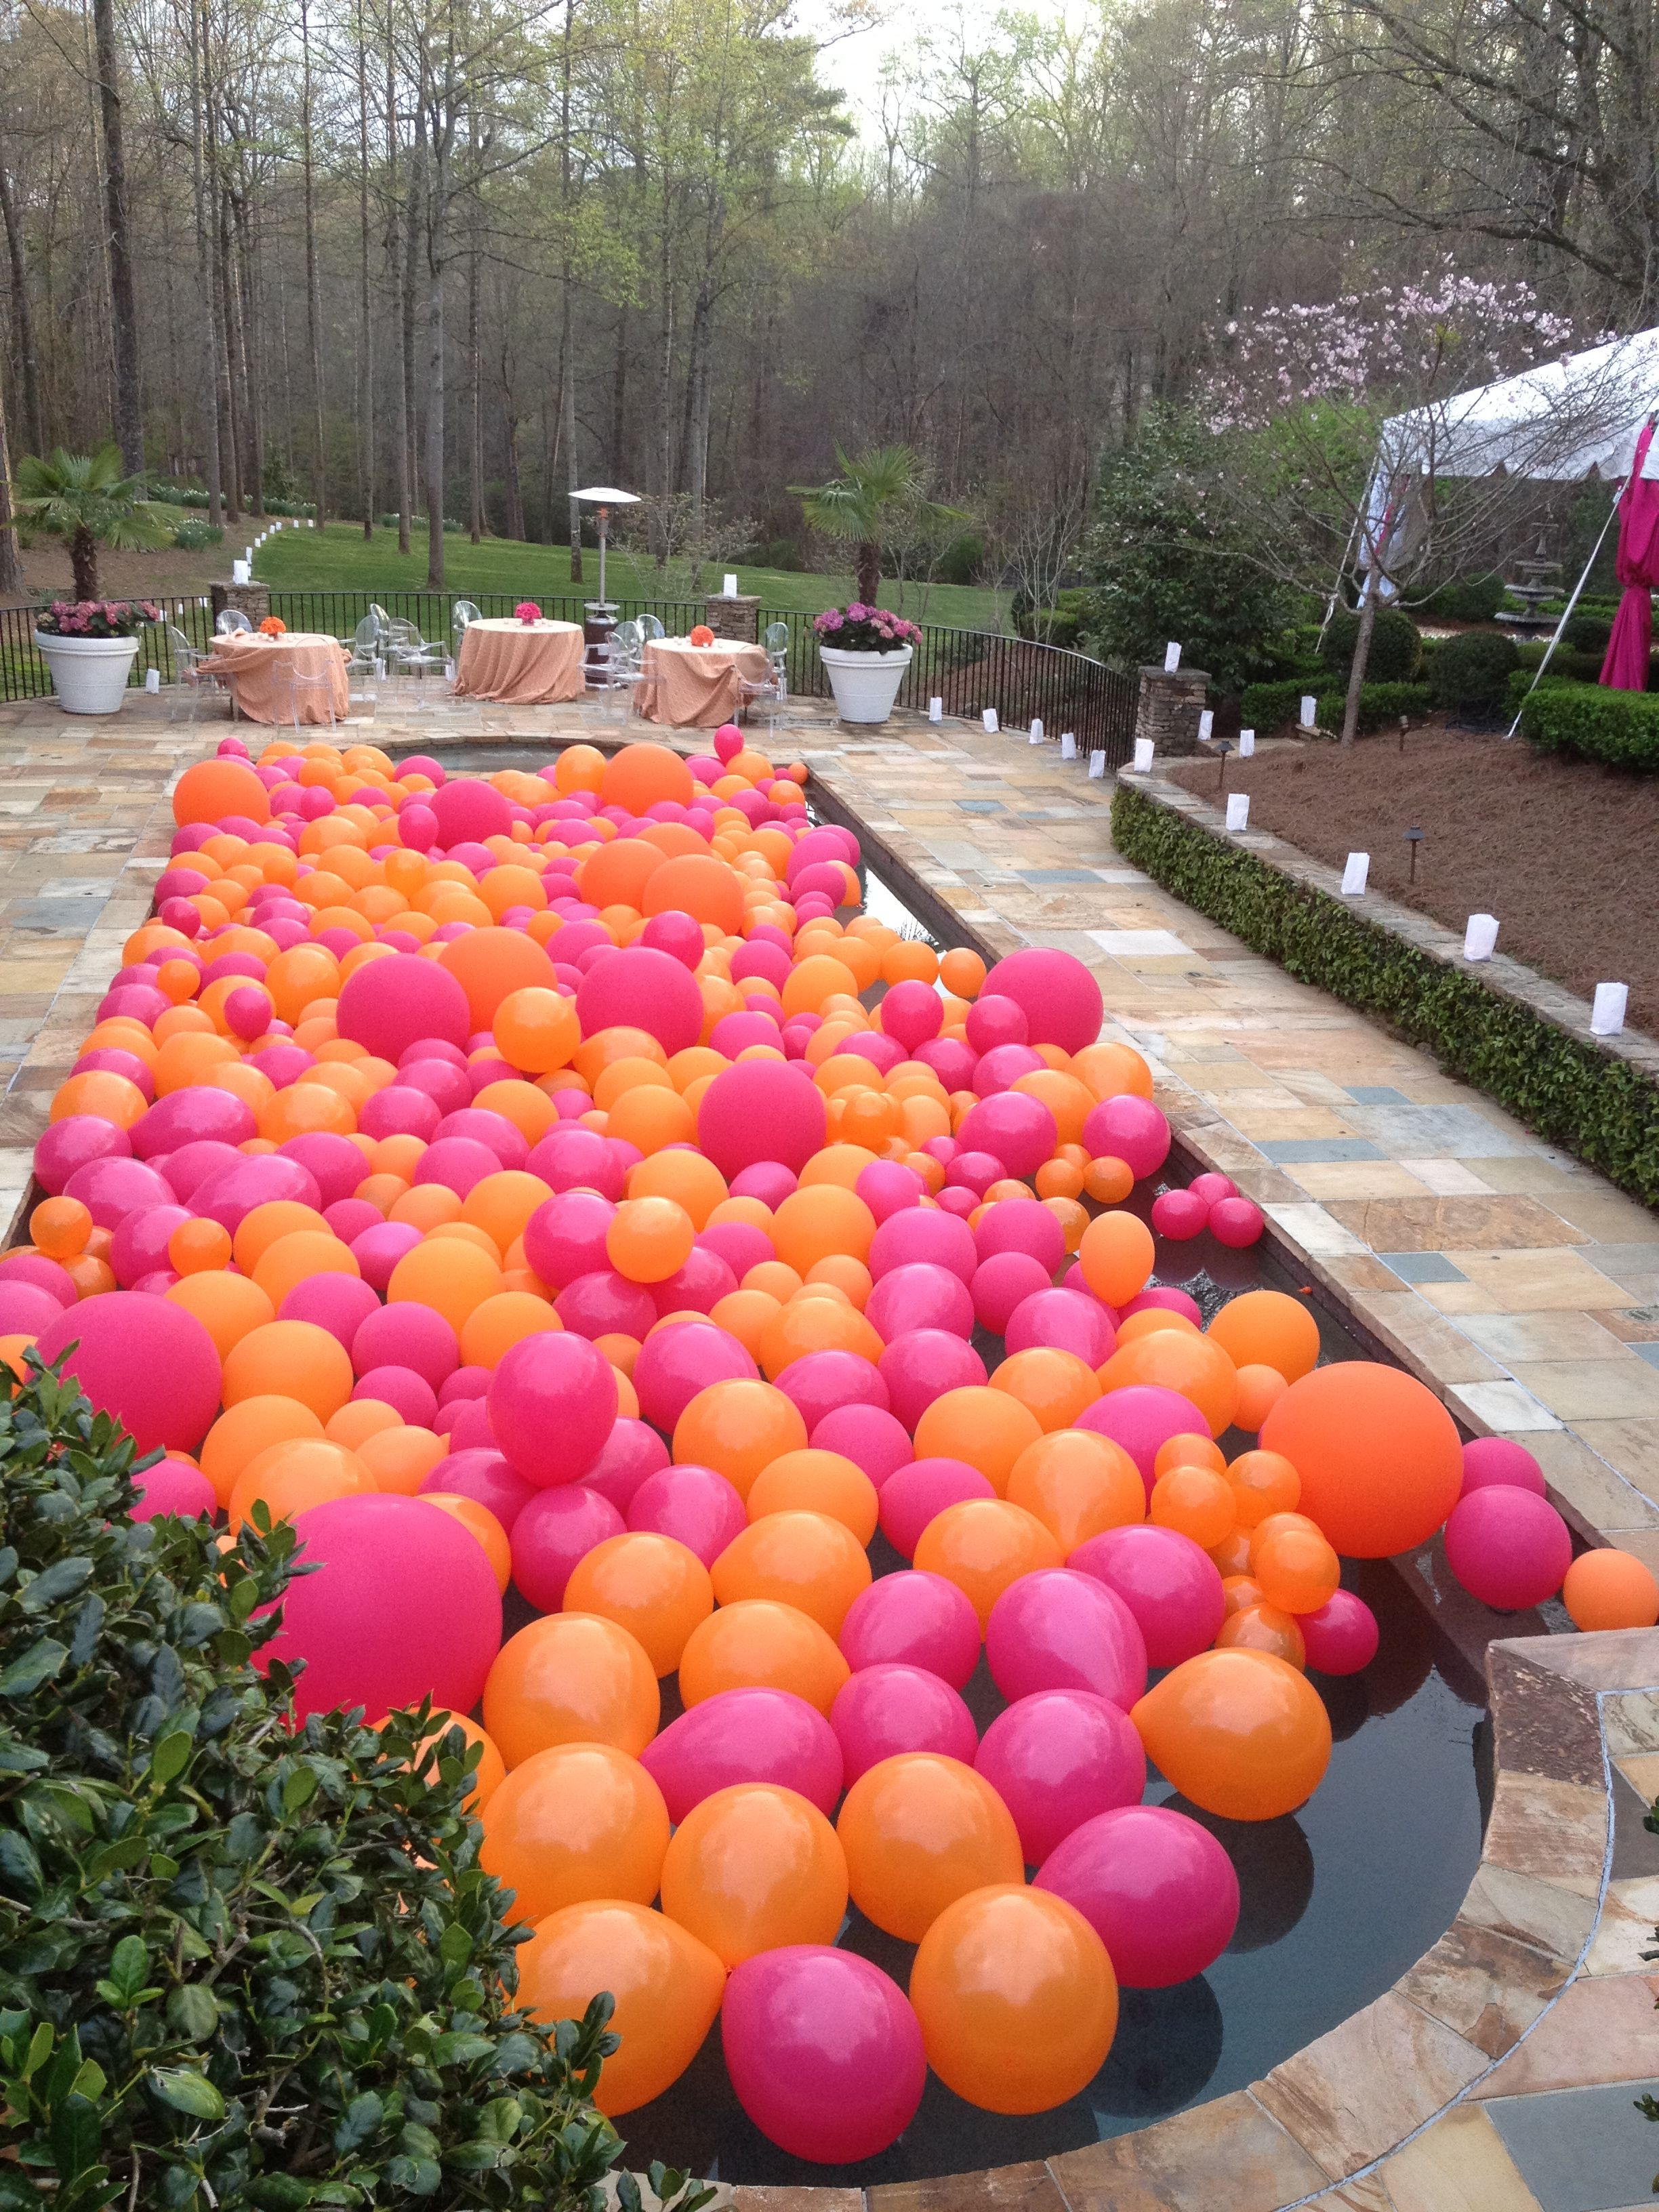 Garden event decor  outdoor party decorations  Google Search  Stuff to Buy  Pinterest